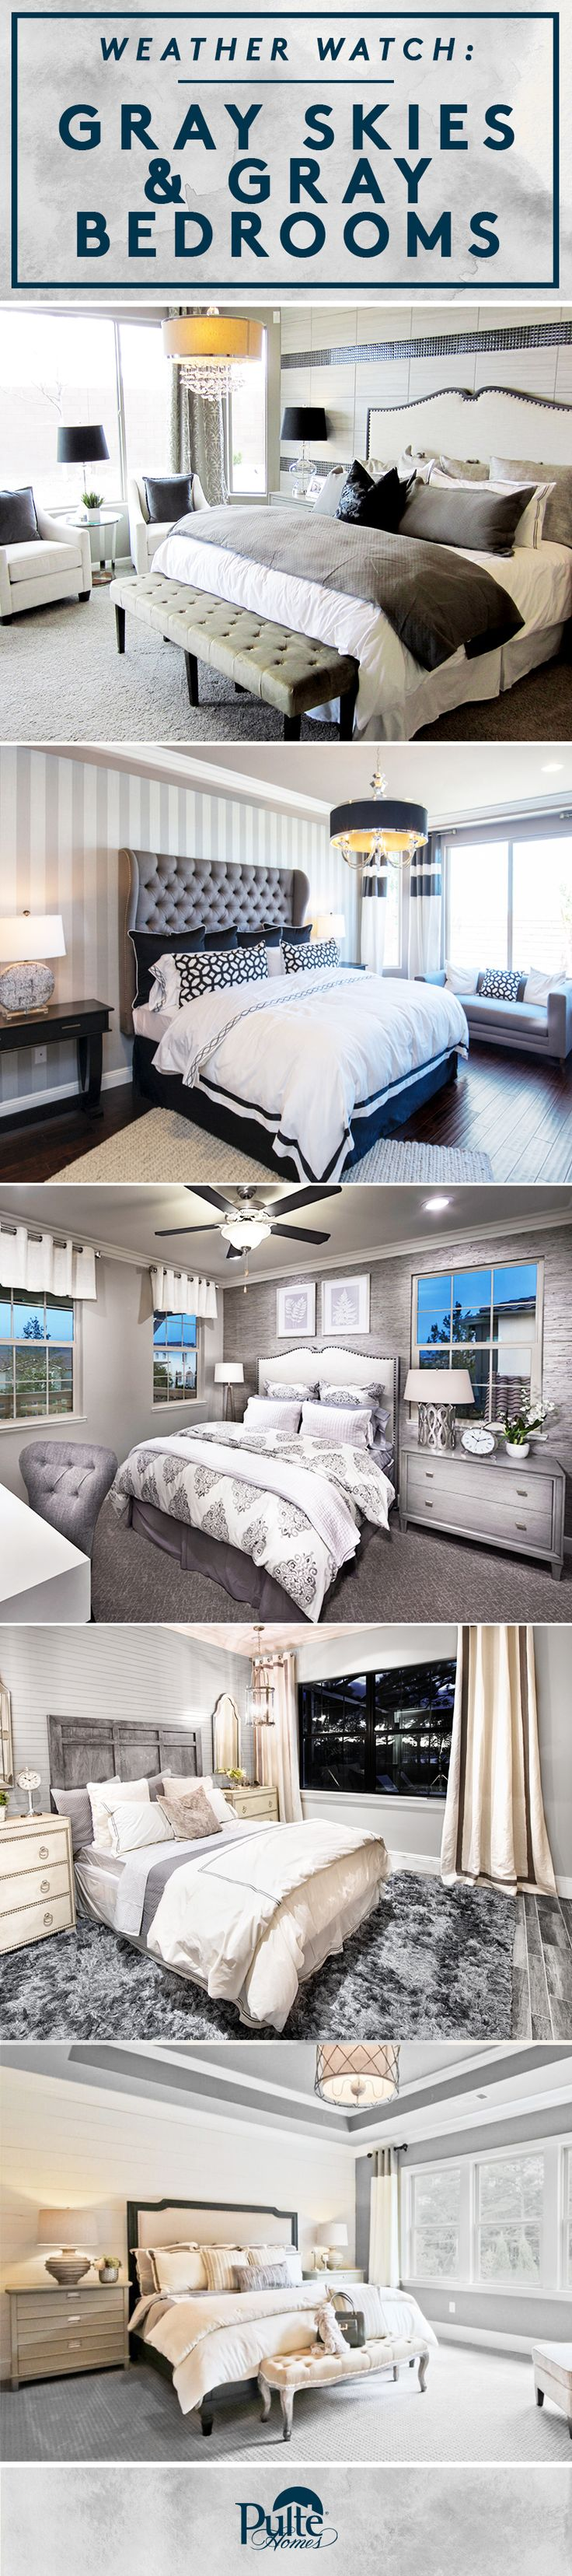 Using Home Decor In Cool Shades Of Gray That S Inspired By Fall Weather Will Turn Pulte Homesfall